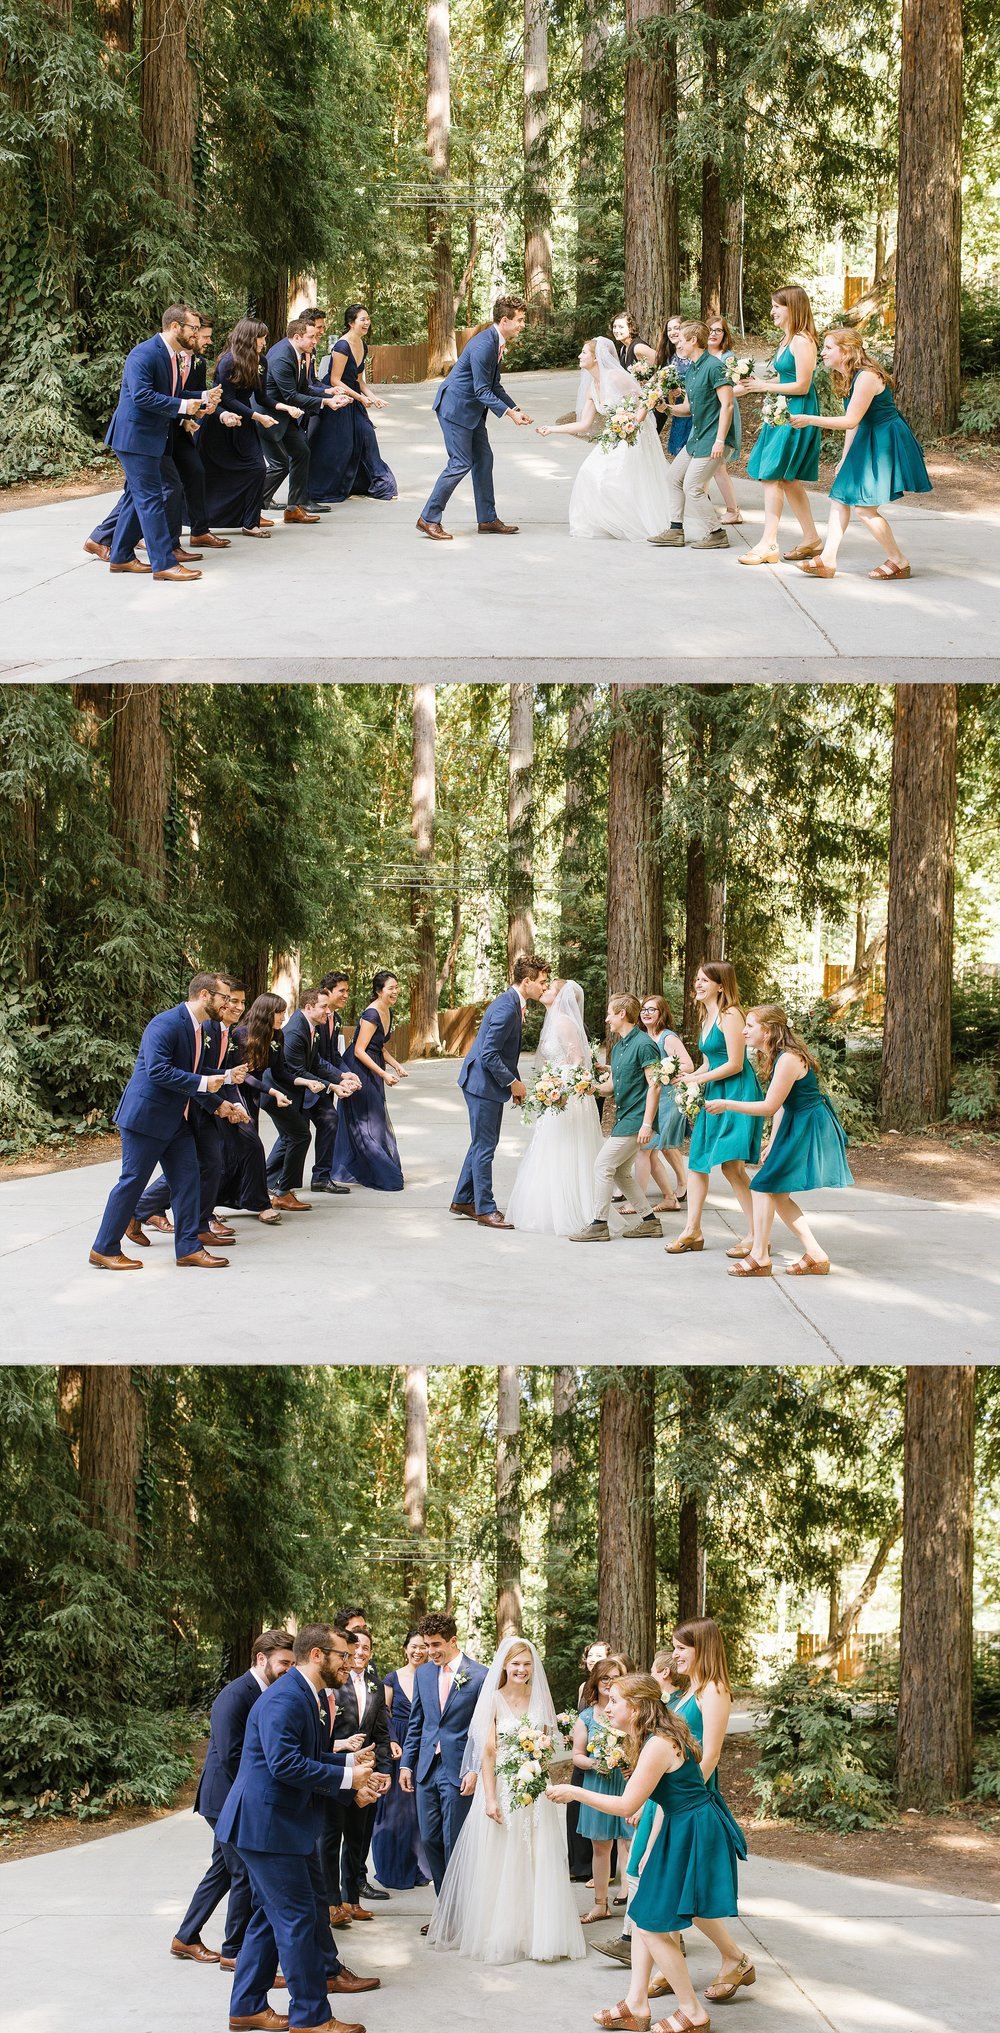 Amphitheatre-of-the-Redwoods-wedding-erikariley_chelsea-dier-photography_0057.jpg